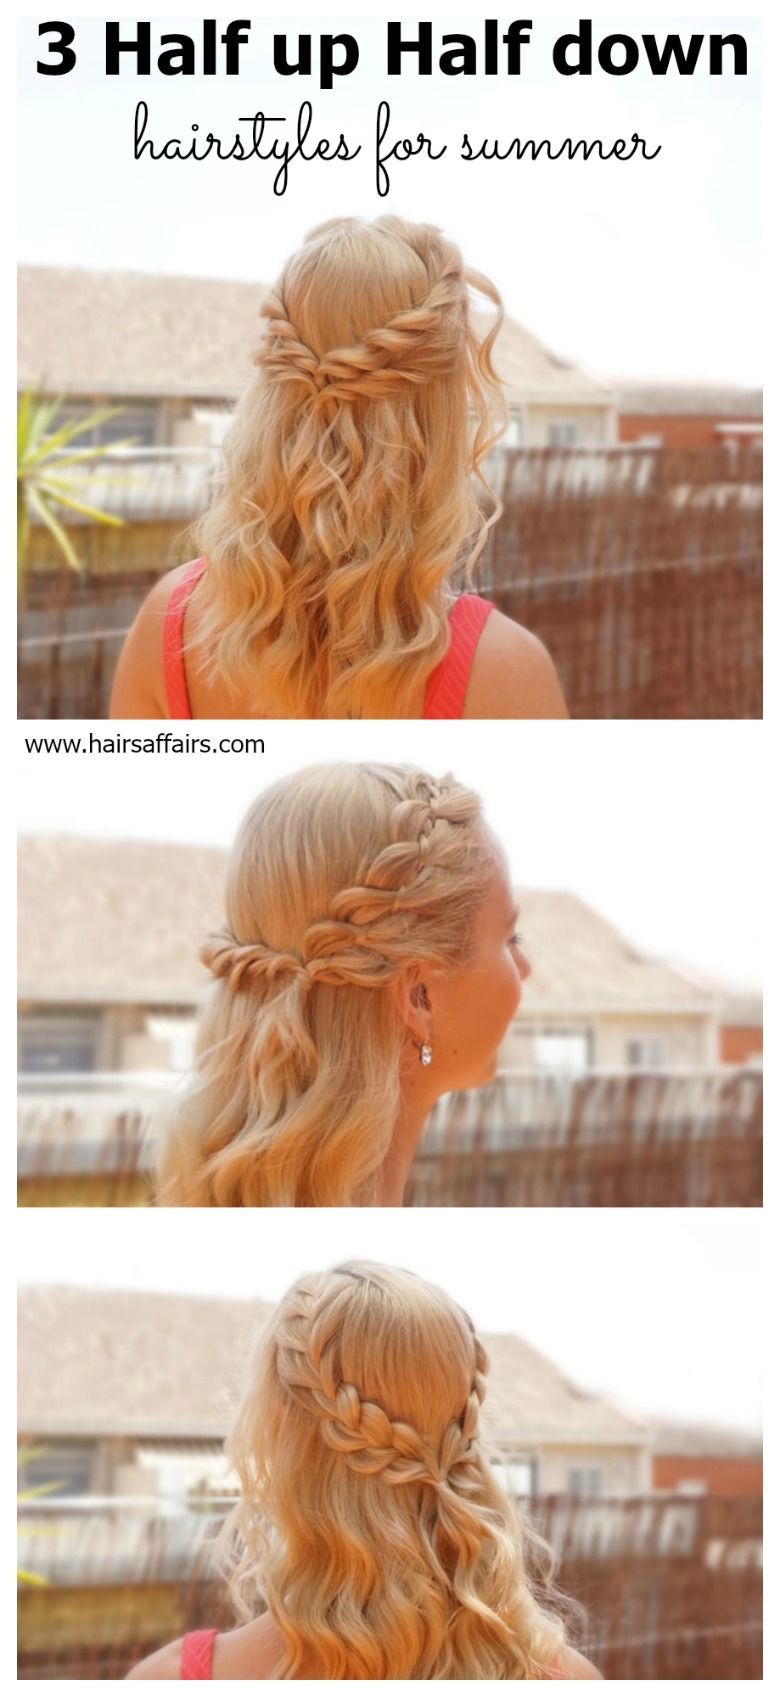 half up half down hairstyles for summer video tutorial included